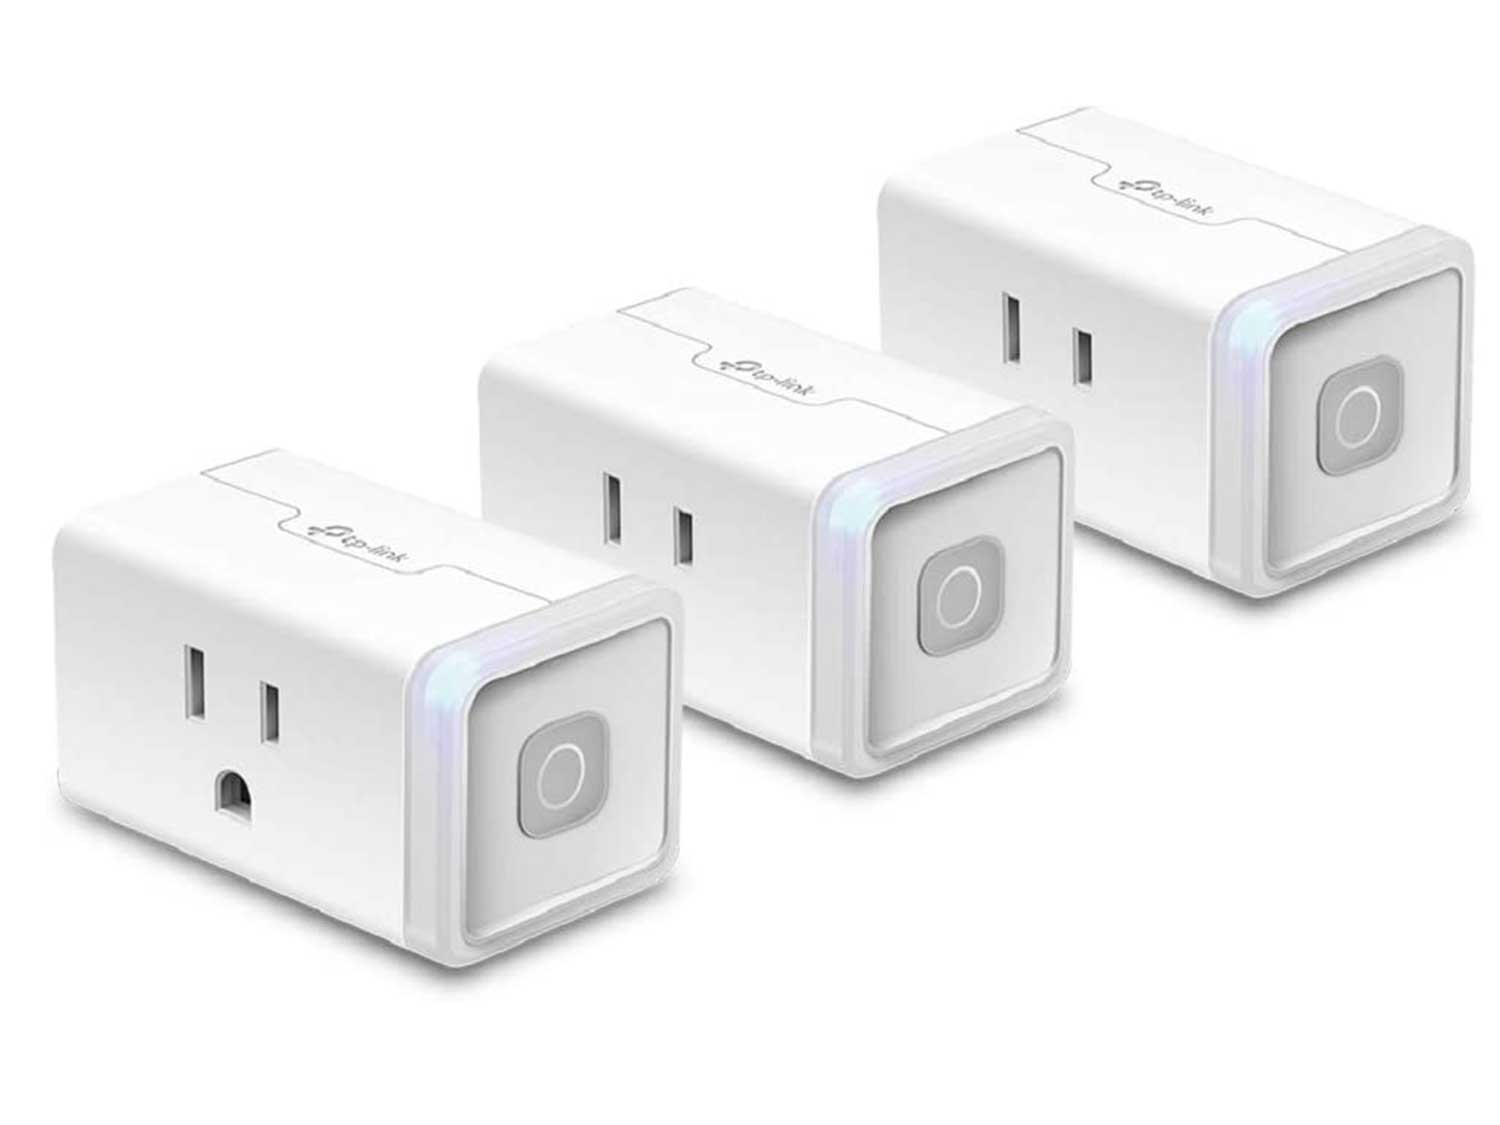 Kasa Smart Plug by TP-Link, Smart Home WiFi Outlet Works with Alexa, Echo, Google Home & IFTTT, No Hub Required, Remote Control, 12 Amp, UL Certified, 3-Pack